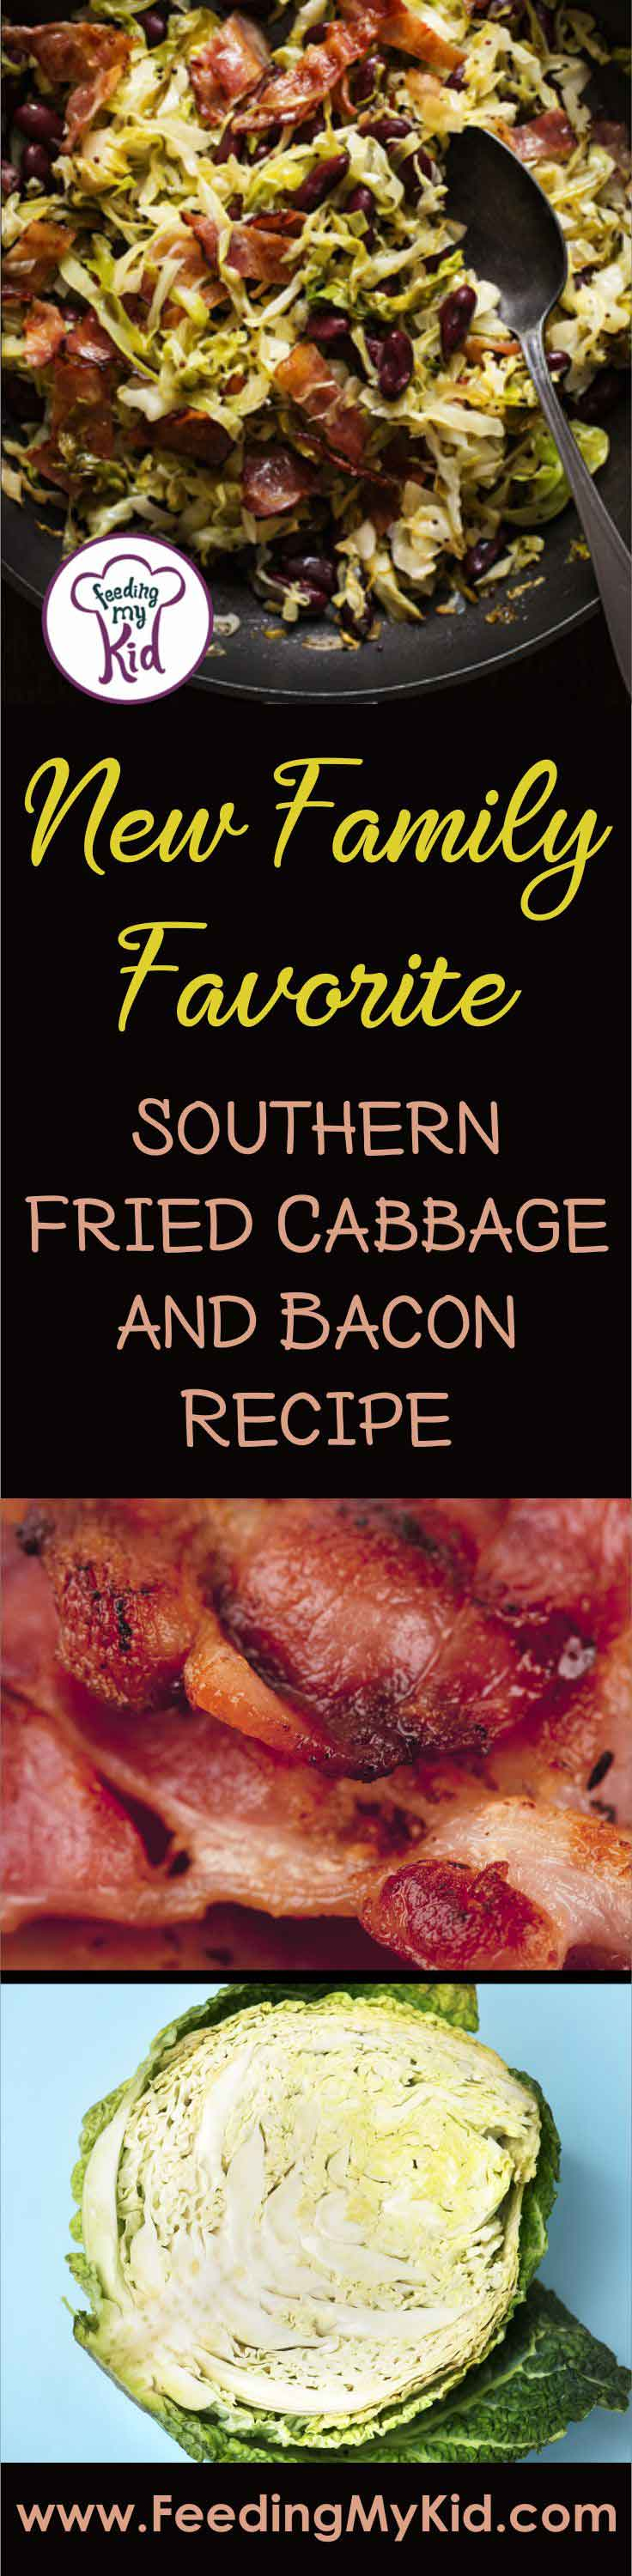 Simmer up this Southern Bacon and Fried Cabbage Recipe for tonight's family meal. Fried cabbage and bacon is the best thing since... well... bacon!